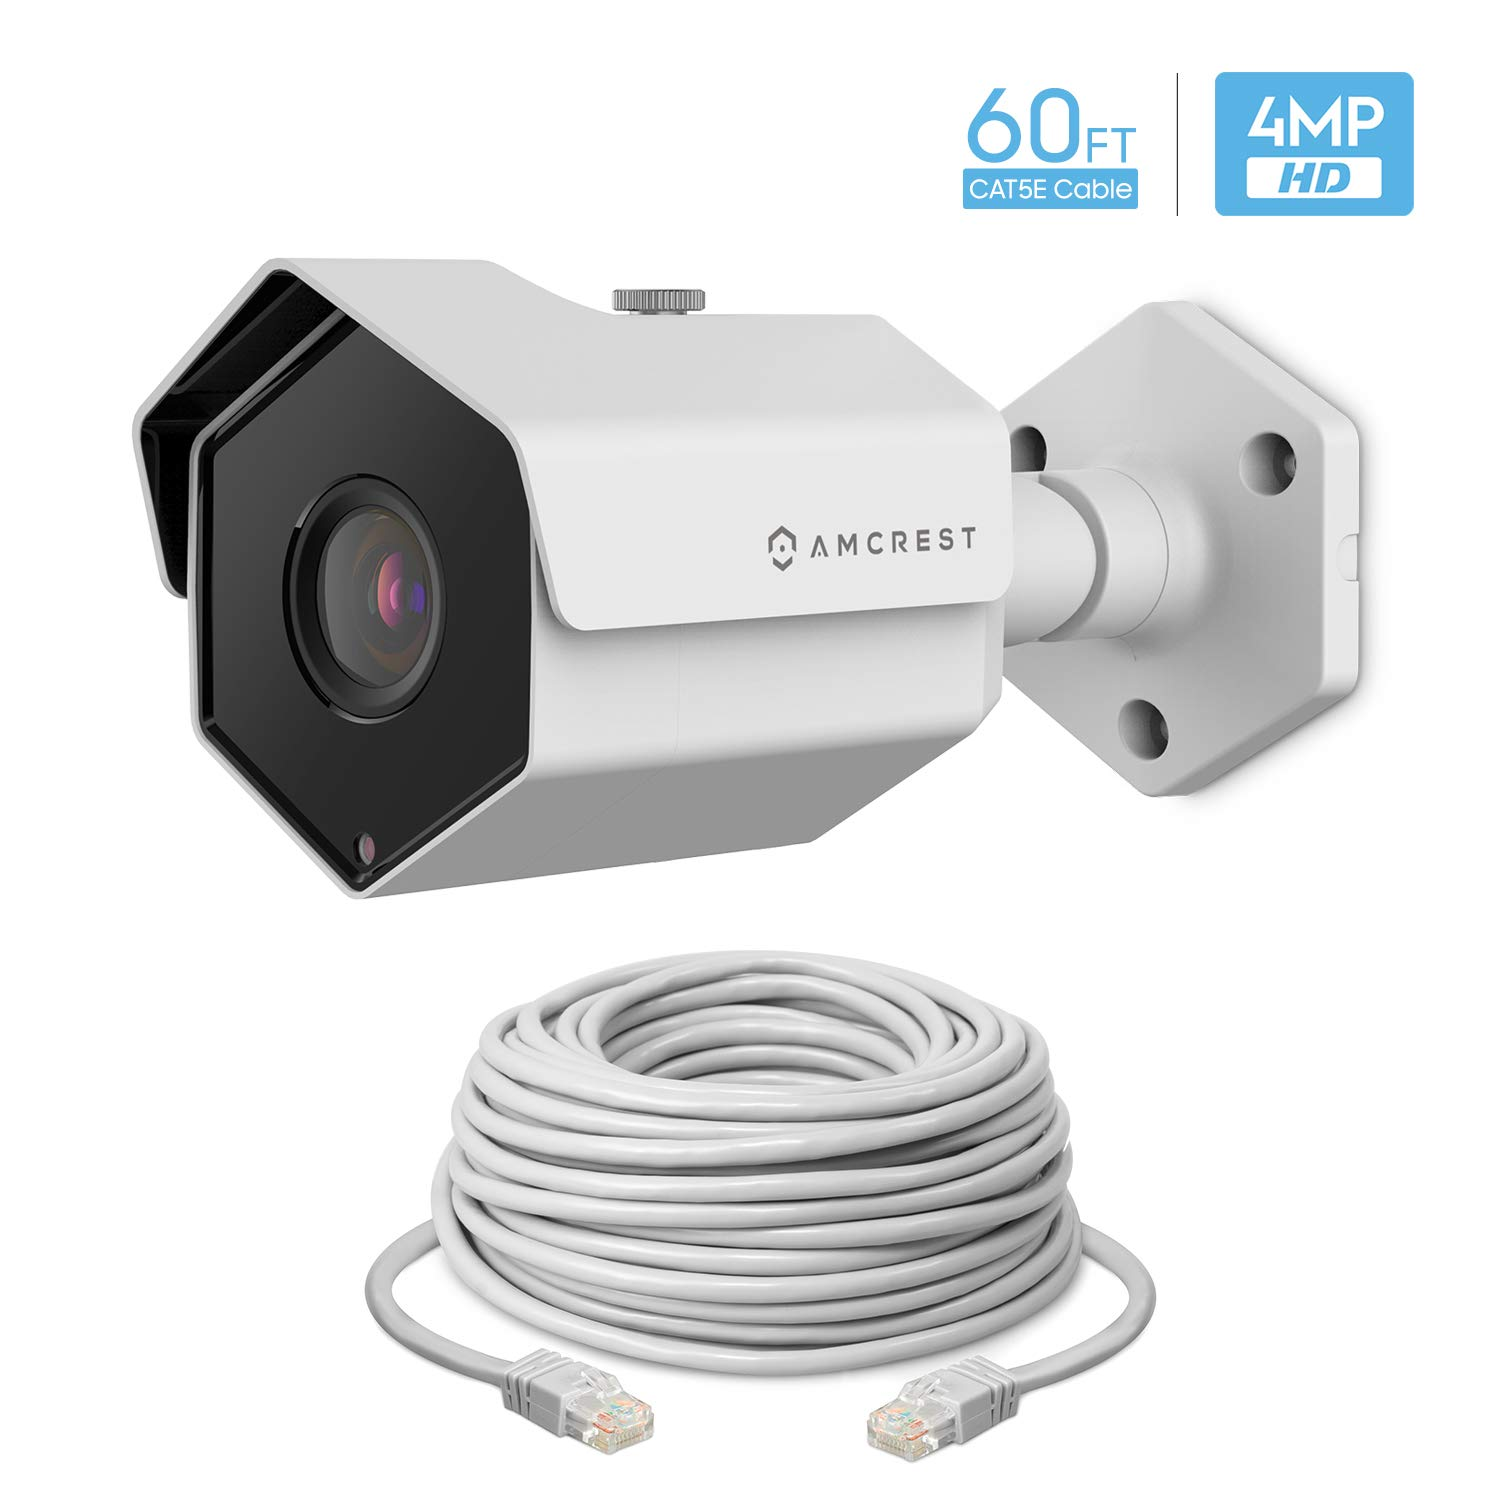 SV3C IP POE Camera Security Outdoor 5 Megapixels Super HD 2592×1944 H.265 Waterproof Cam Onvif IR Night Vision Motion Detection 2 Pack